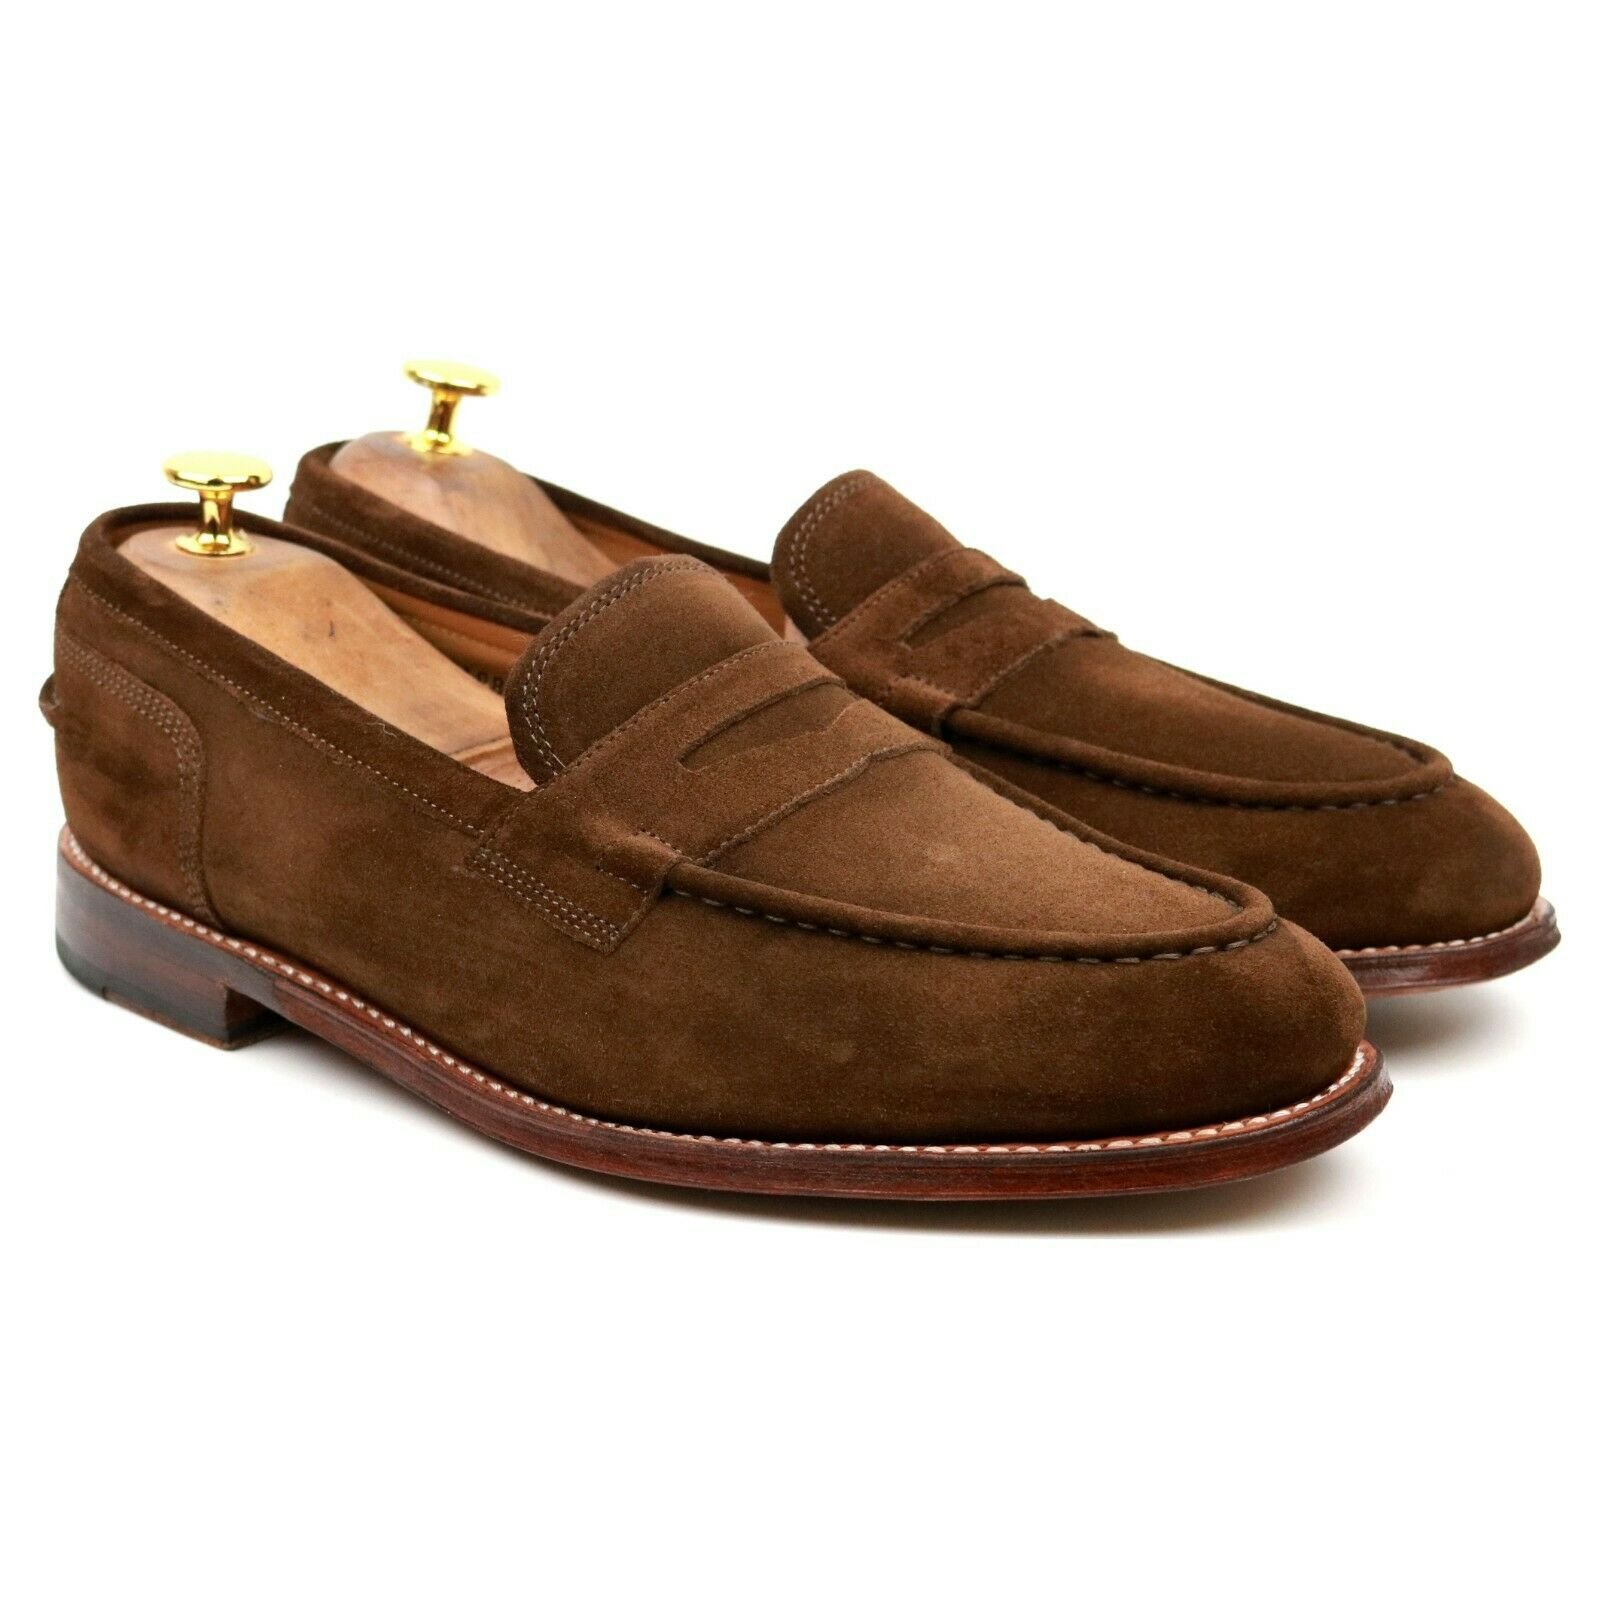 Grenson 'Maxwell' Brown Suede Leather Loafers UK 9 E